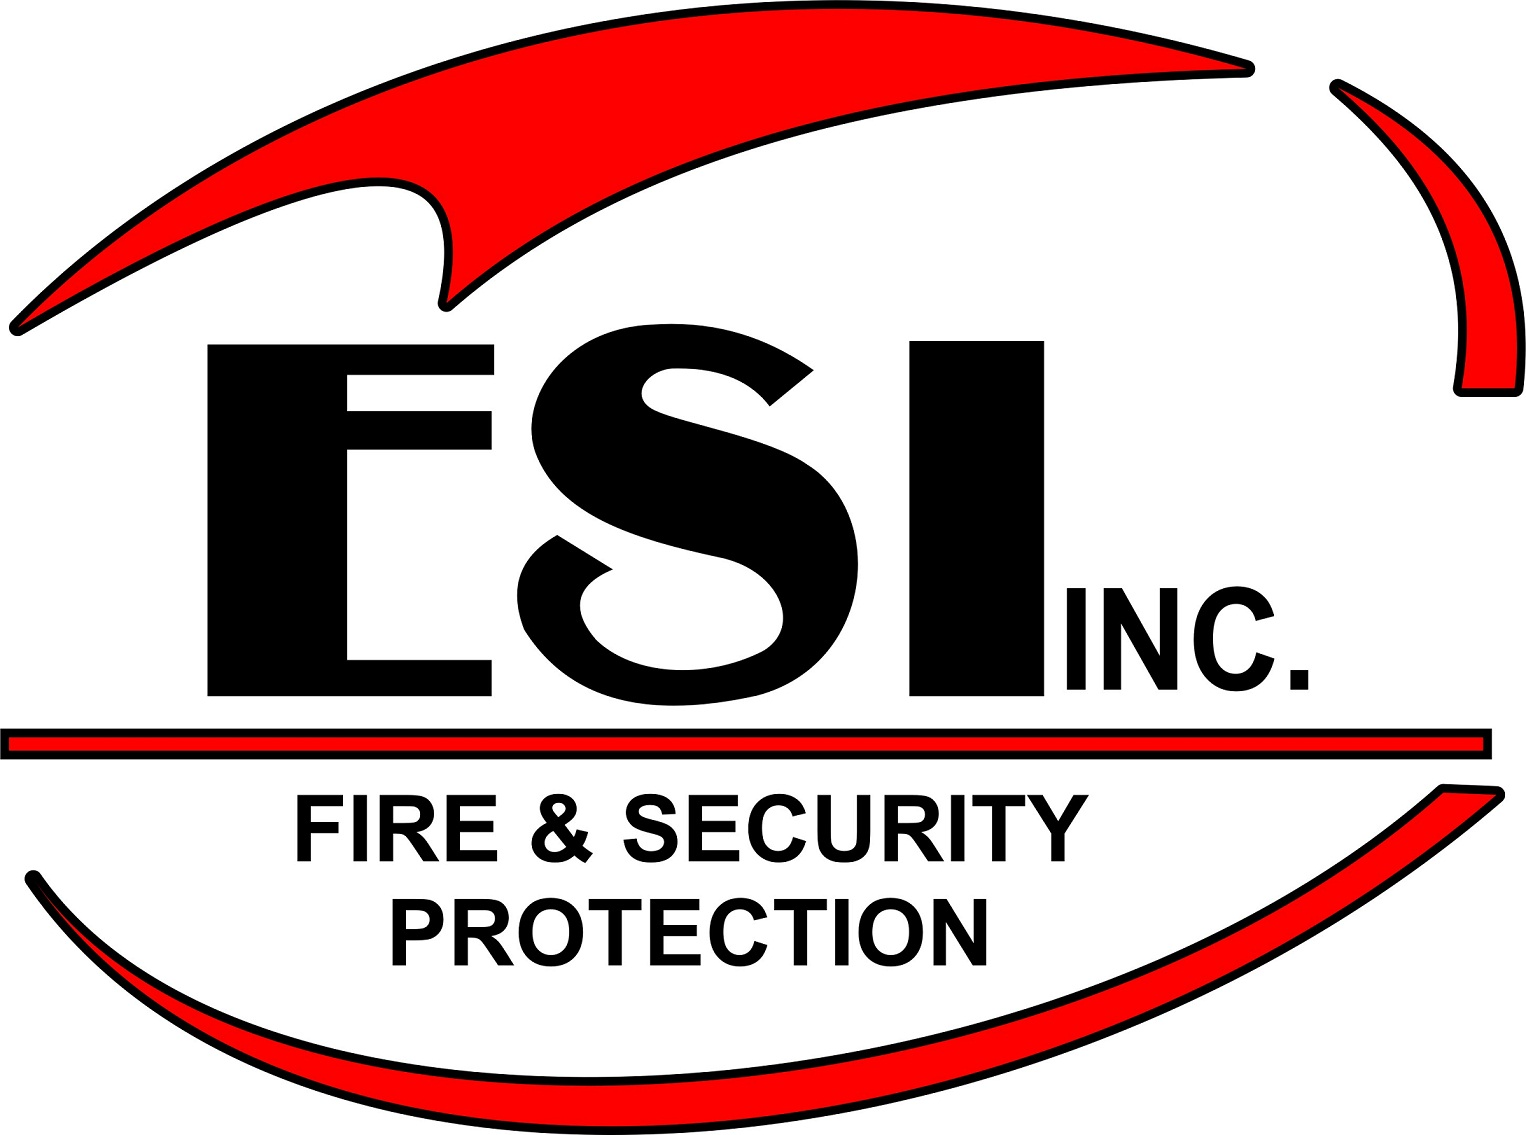 ESI Fire & Security Protection